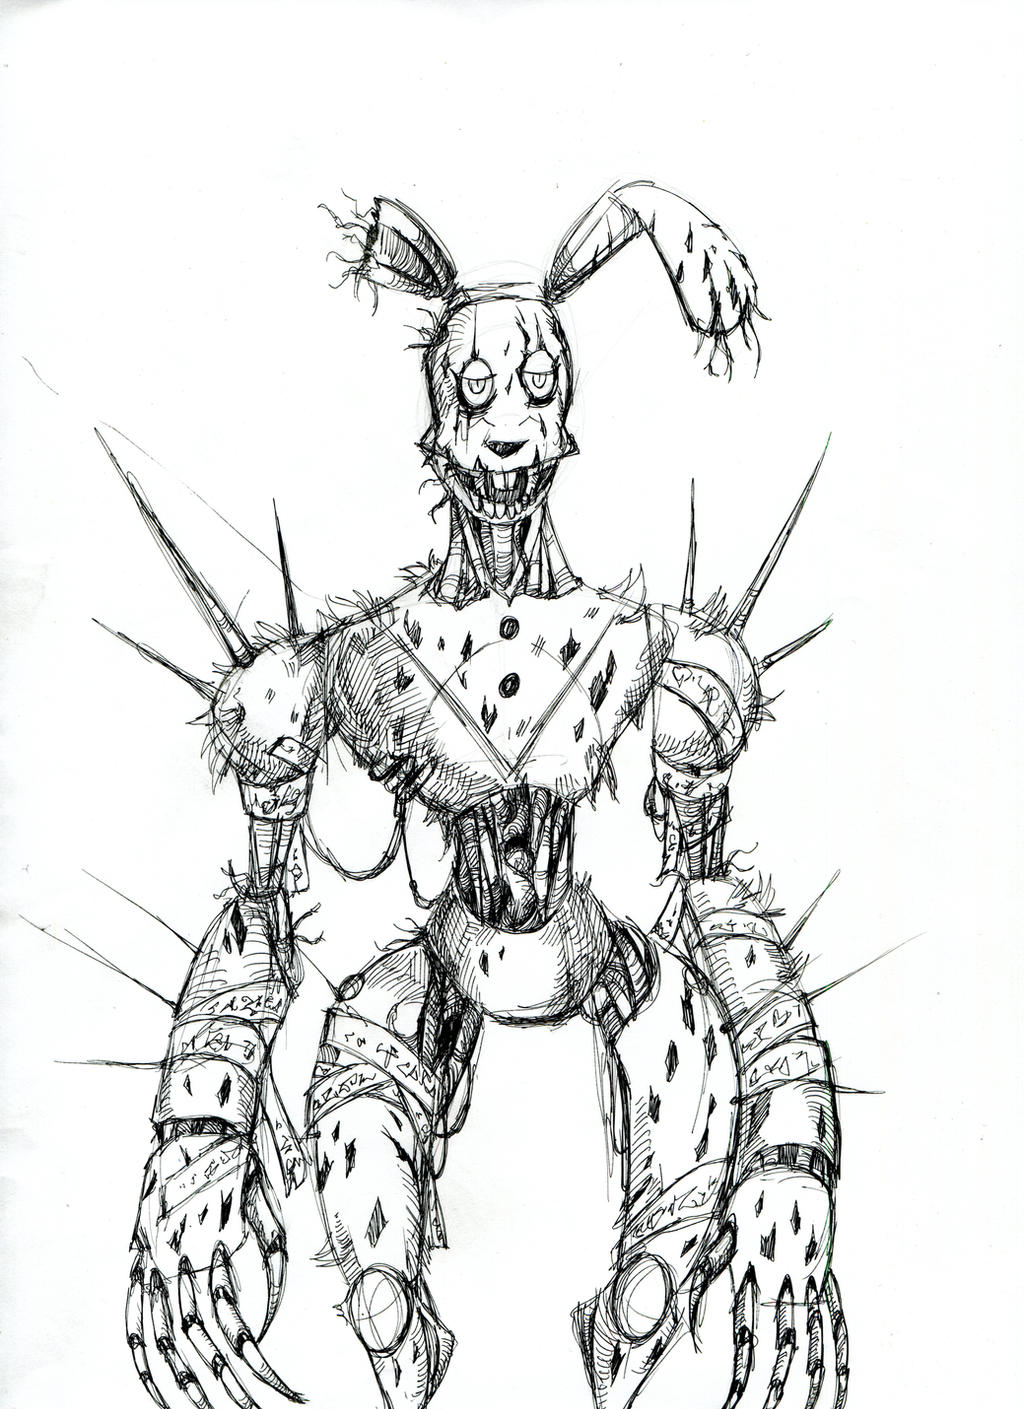 together with cyberpunk springtrap by winddragon24 d8ssjlw besides how to draw Goku Super Saiyan from Dragon Ball Z step 13 besides maxresdefault furthermore mortal kombat 009 in addition Imagenes de Goku y vegeta fase 4 besides 9czxxA7Ri as well  together with freddy fazbear plush template by trinitythewerewolf33 d7yfksa in addition maxresdefault further fnaf 4 nightmare foxy mangle papercraft by adogopaper d92w8z0. on five nights at freddy s 4 coloring pages printable